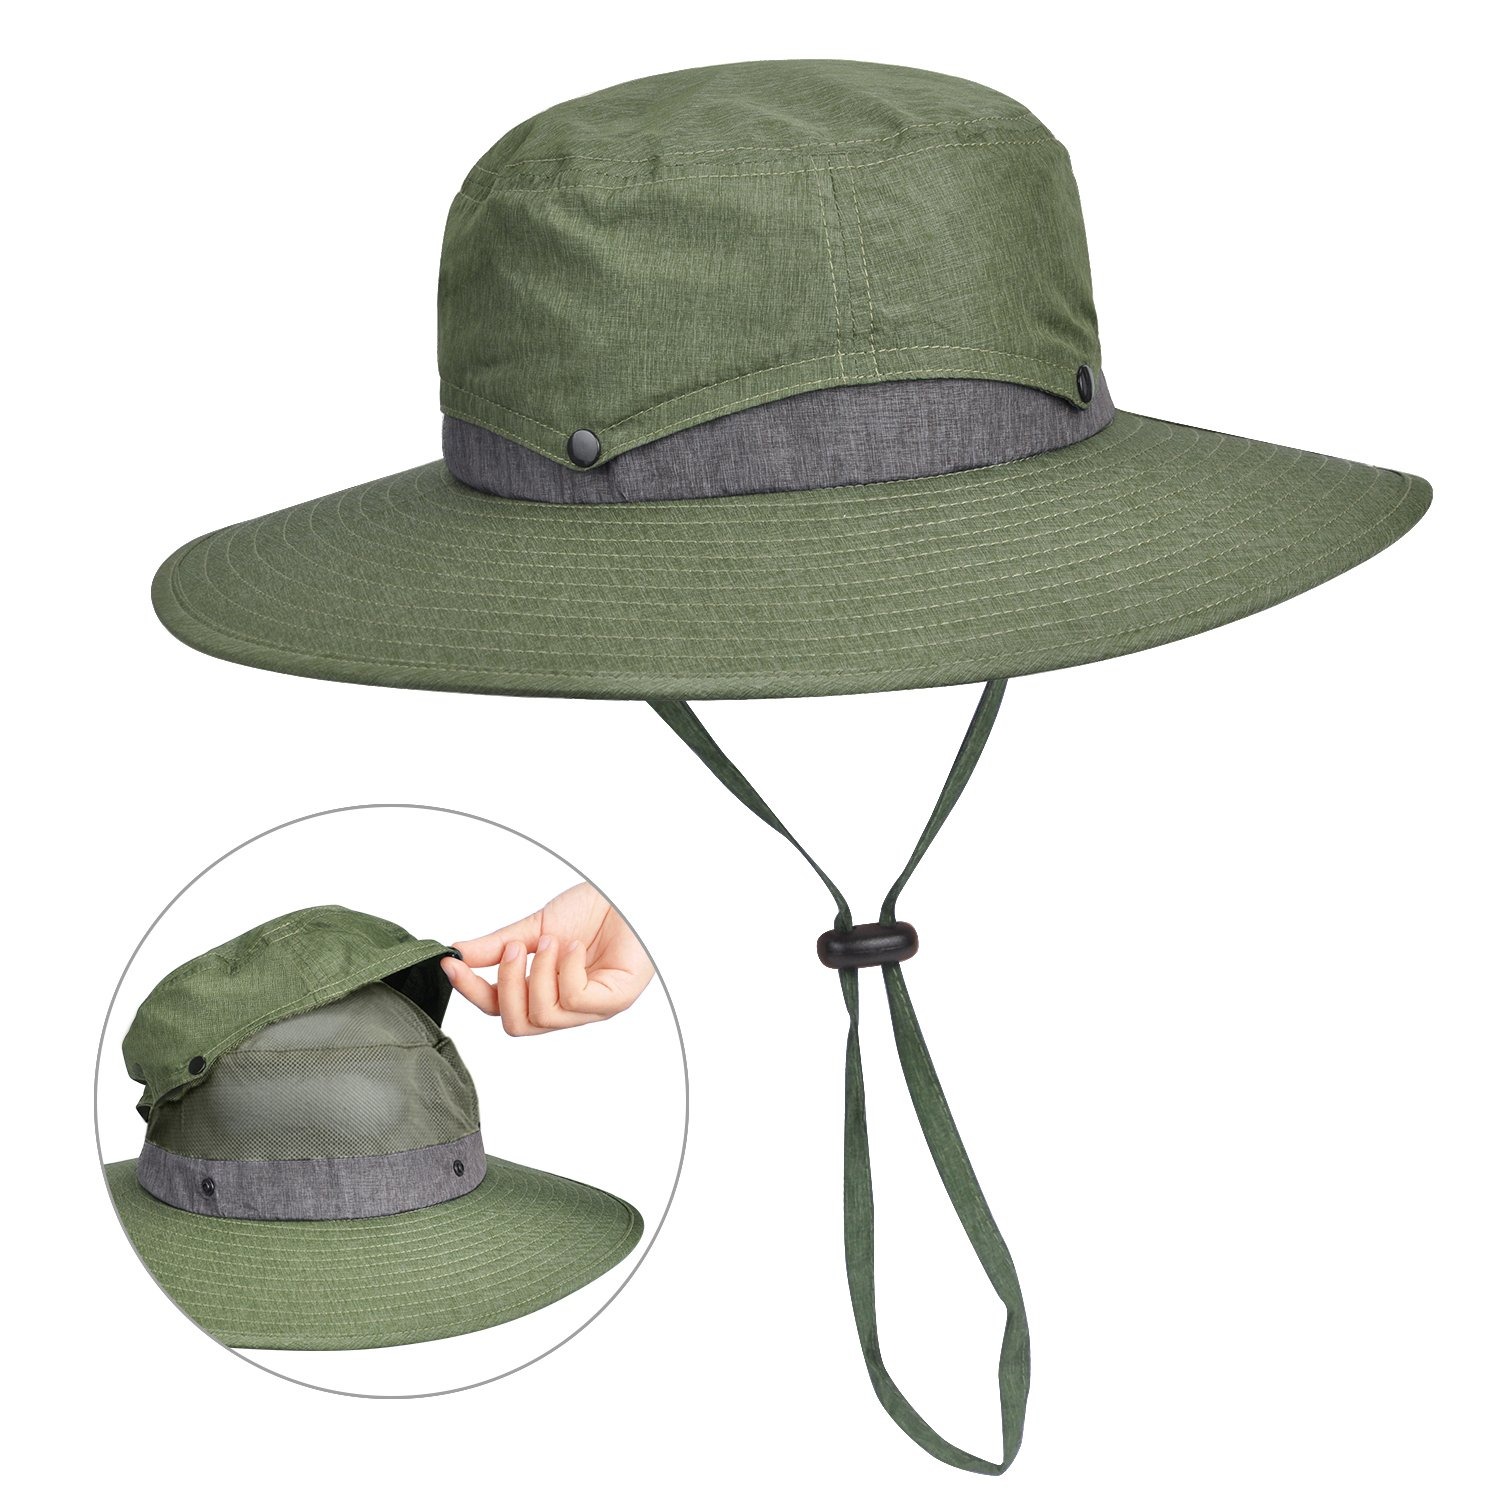 433c80d10084e Solaris Outdoor Sun Protection Hat Men Wide Brim Hunting Fishing Camping  Safari Cap with Collapsible Crown  Amazon.in  Clothing   Accessories